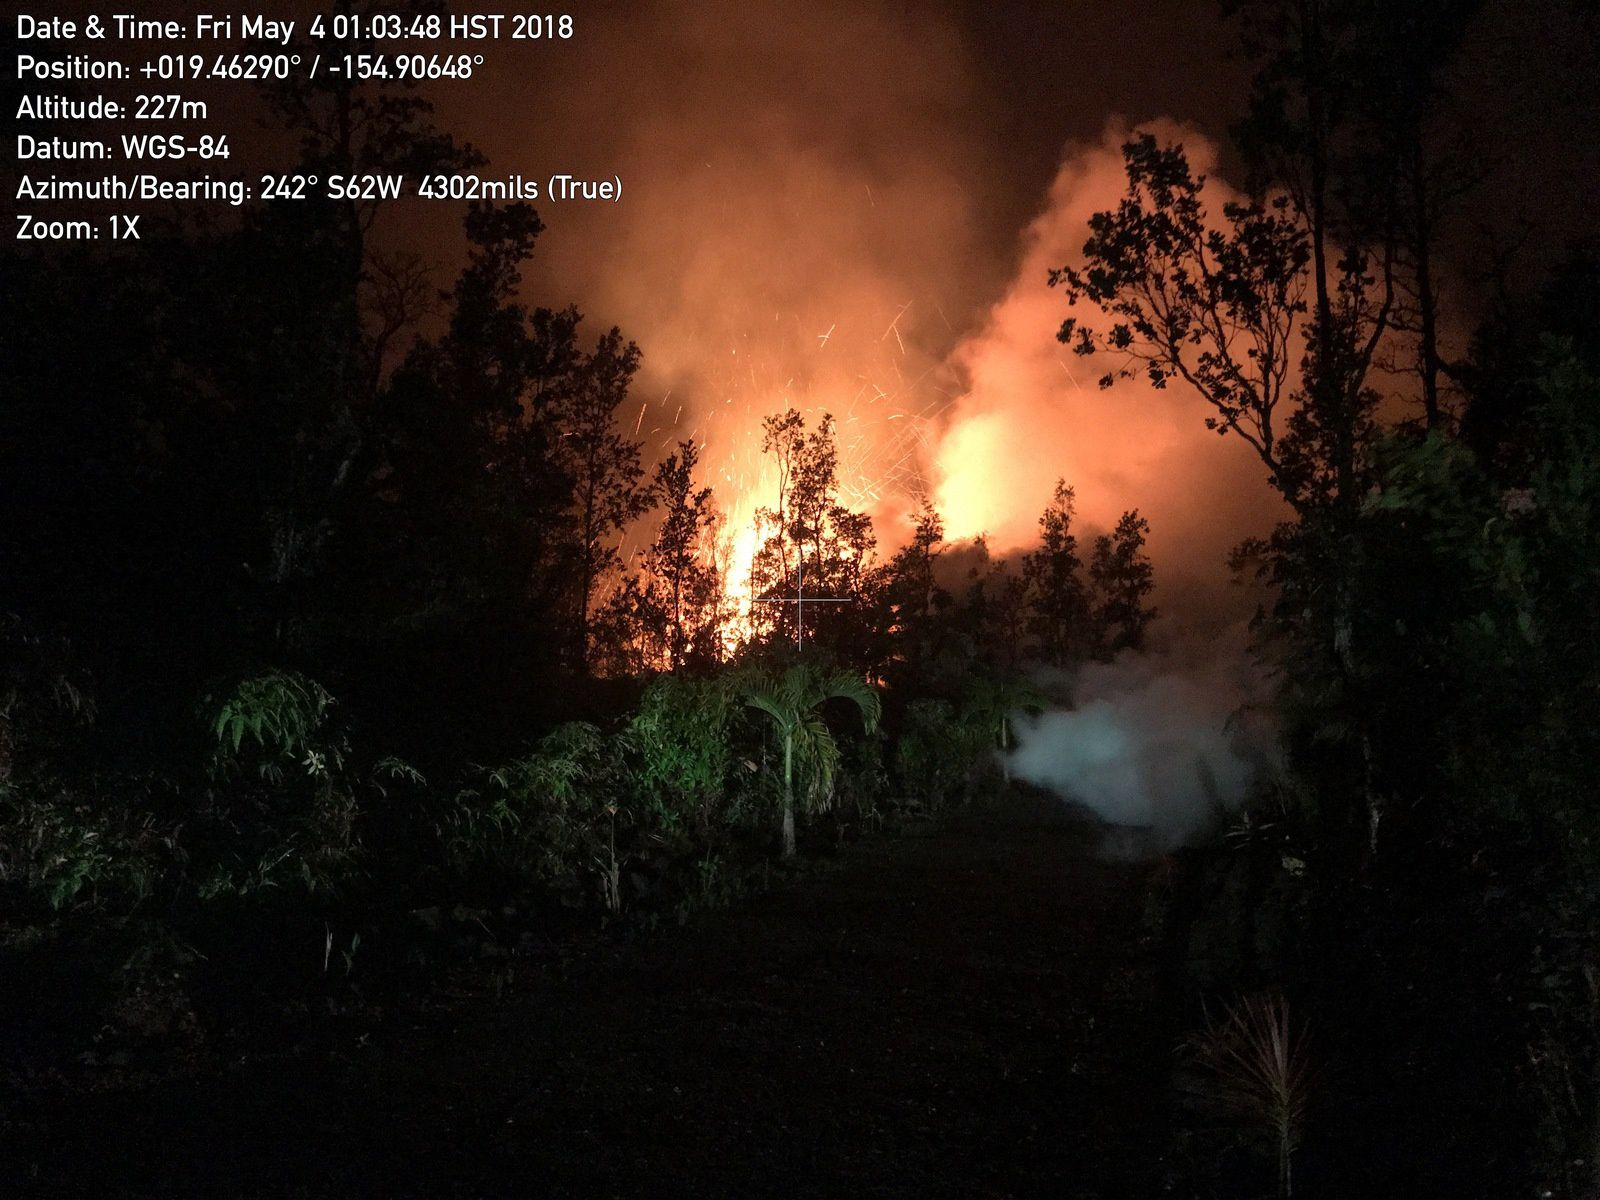 Kilauea rift zone East - 04.05.2018 / 1h03 opening of fissure 2 - photo HVO - USGS